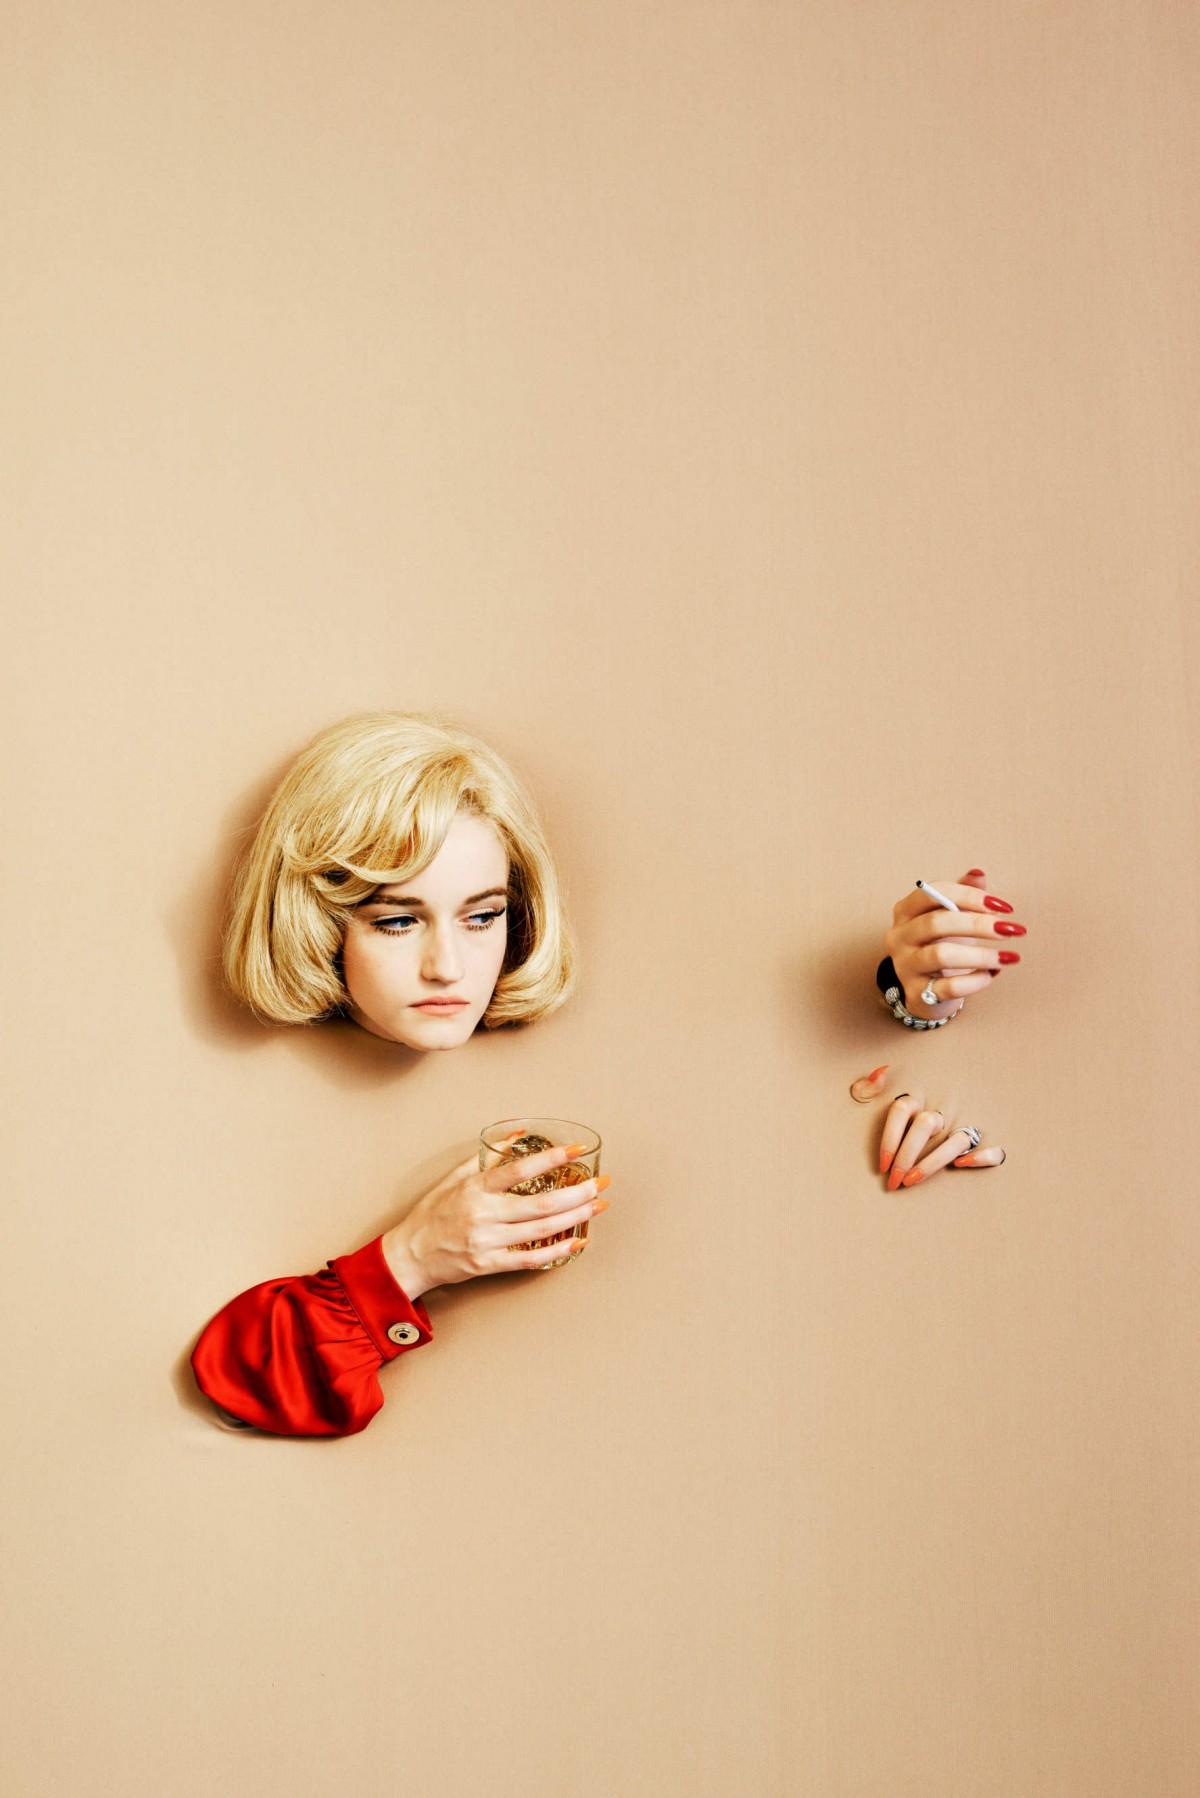 A Fashion Editorial Of Disjointed Body Parts By Alex Prager - Plain Magazine-1212